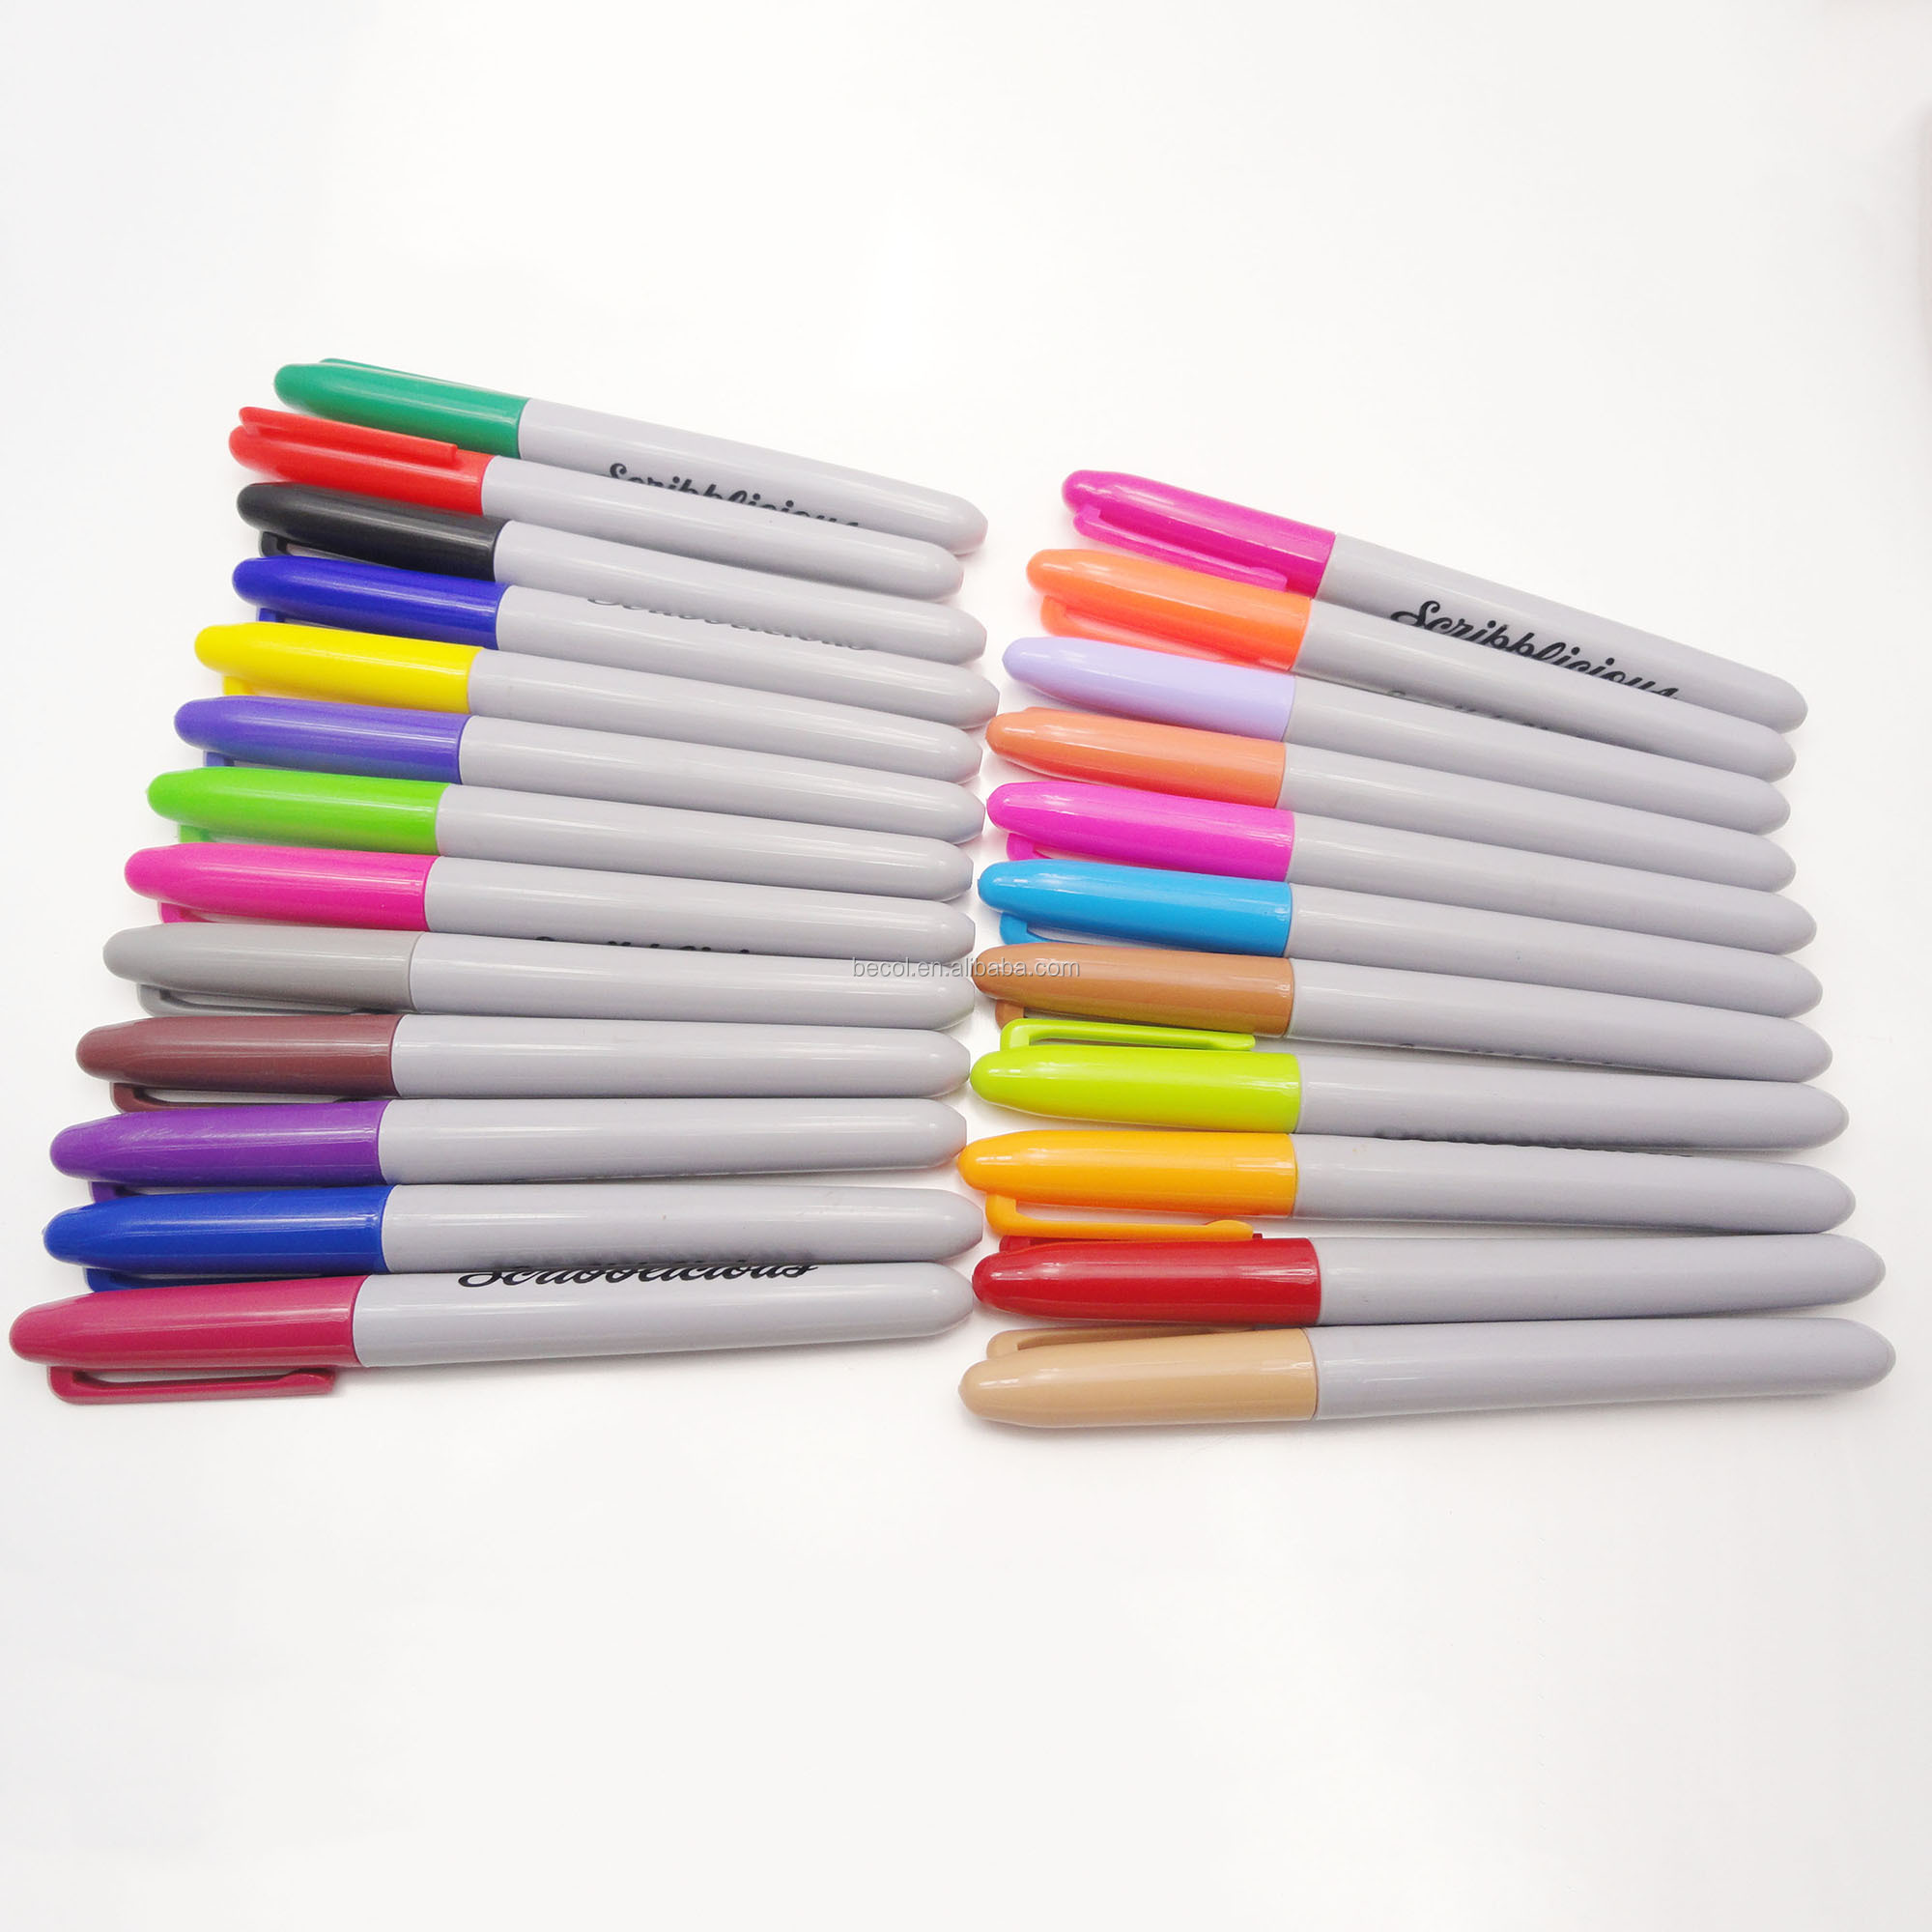 24 colors Fine tip sharpie permanent waterproof marker indelible ink marker pen